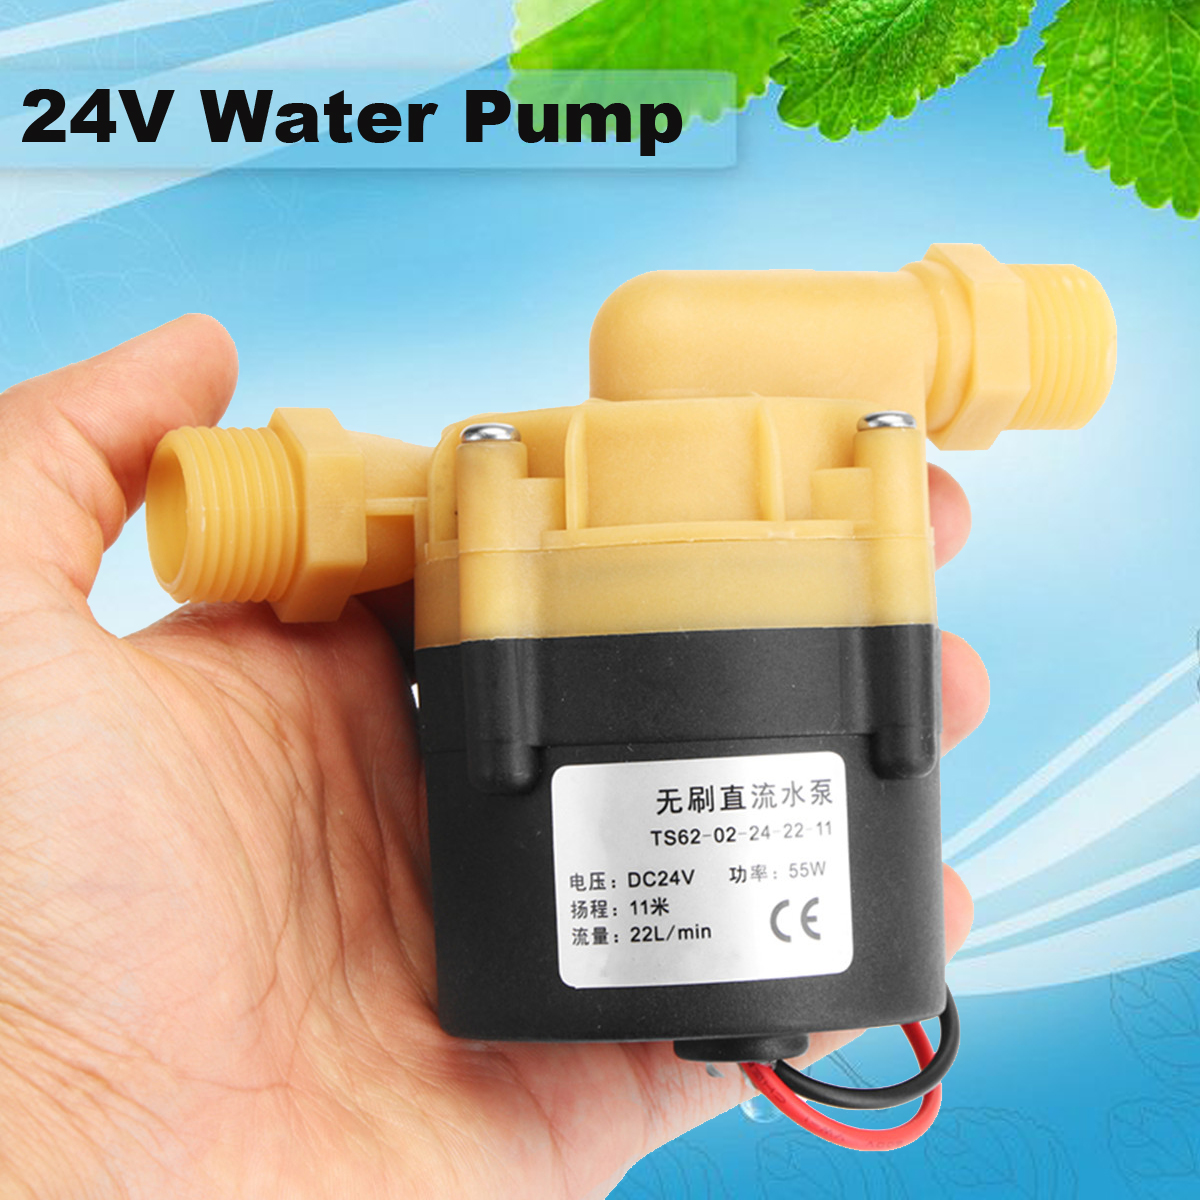 Brushless DC 24V 55W 22L/min Water Pump Mini Booster Pump 1.5A 11m For Chiller Machine And LED Light Pump brushless dc pump p2450 24v voltage 50w watt 13 min 18psi for s